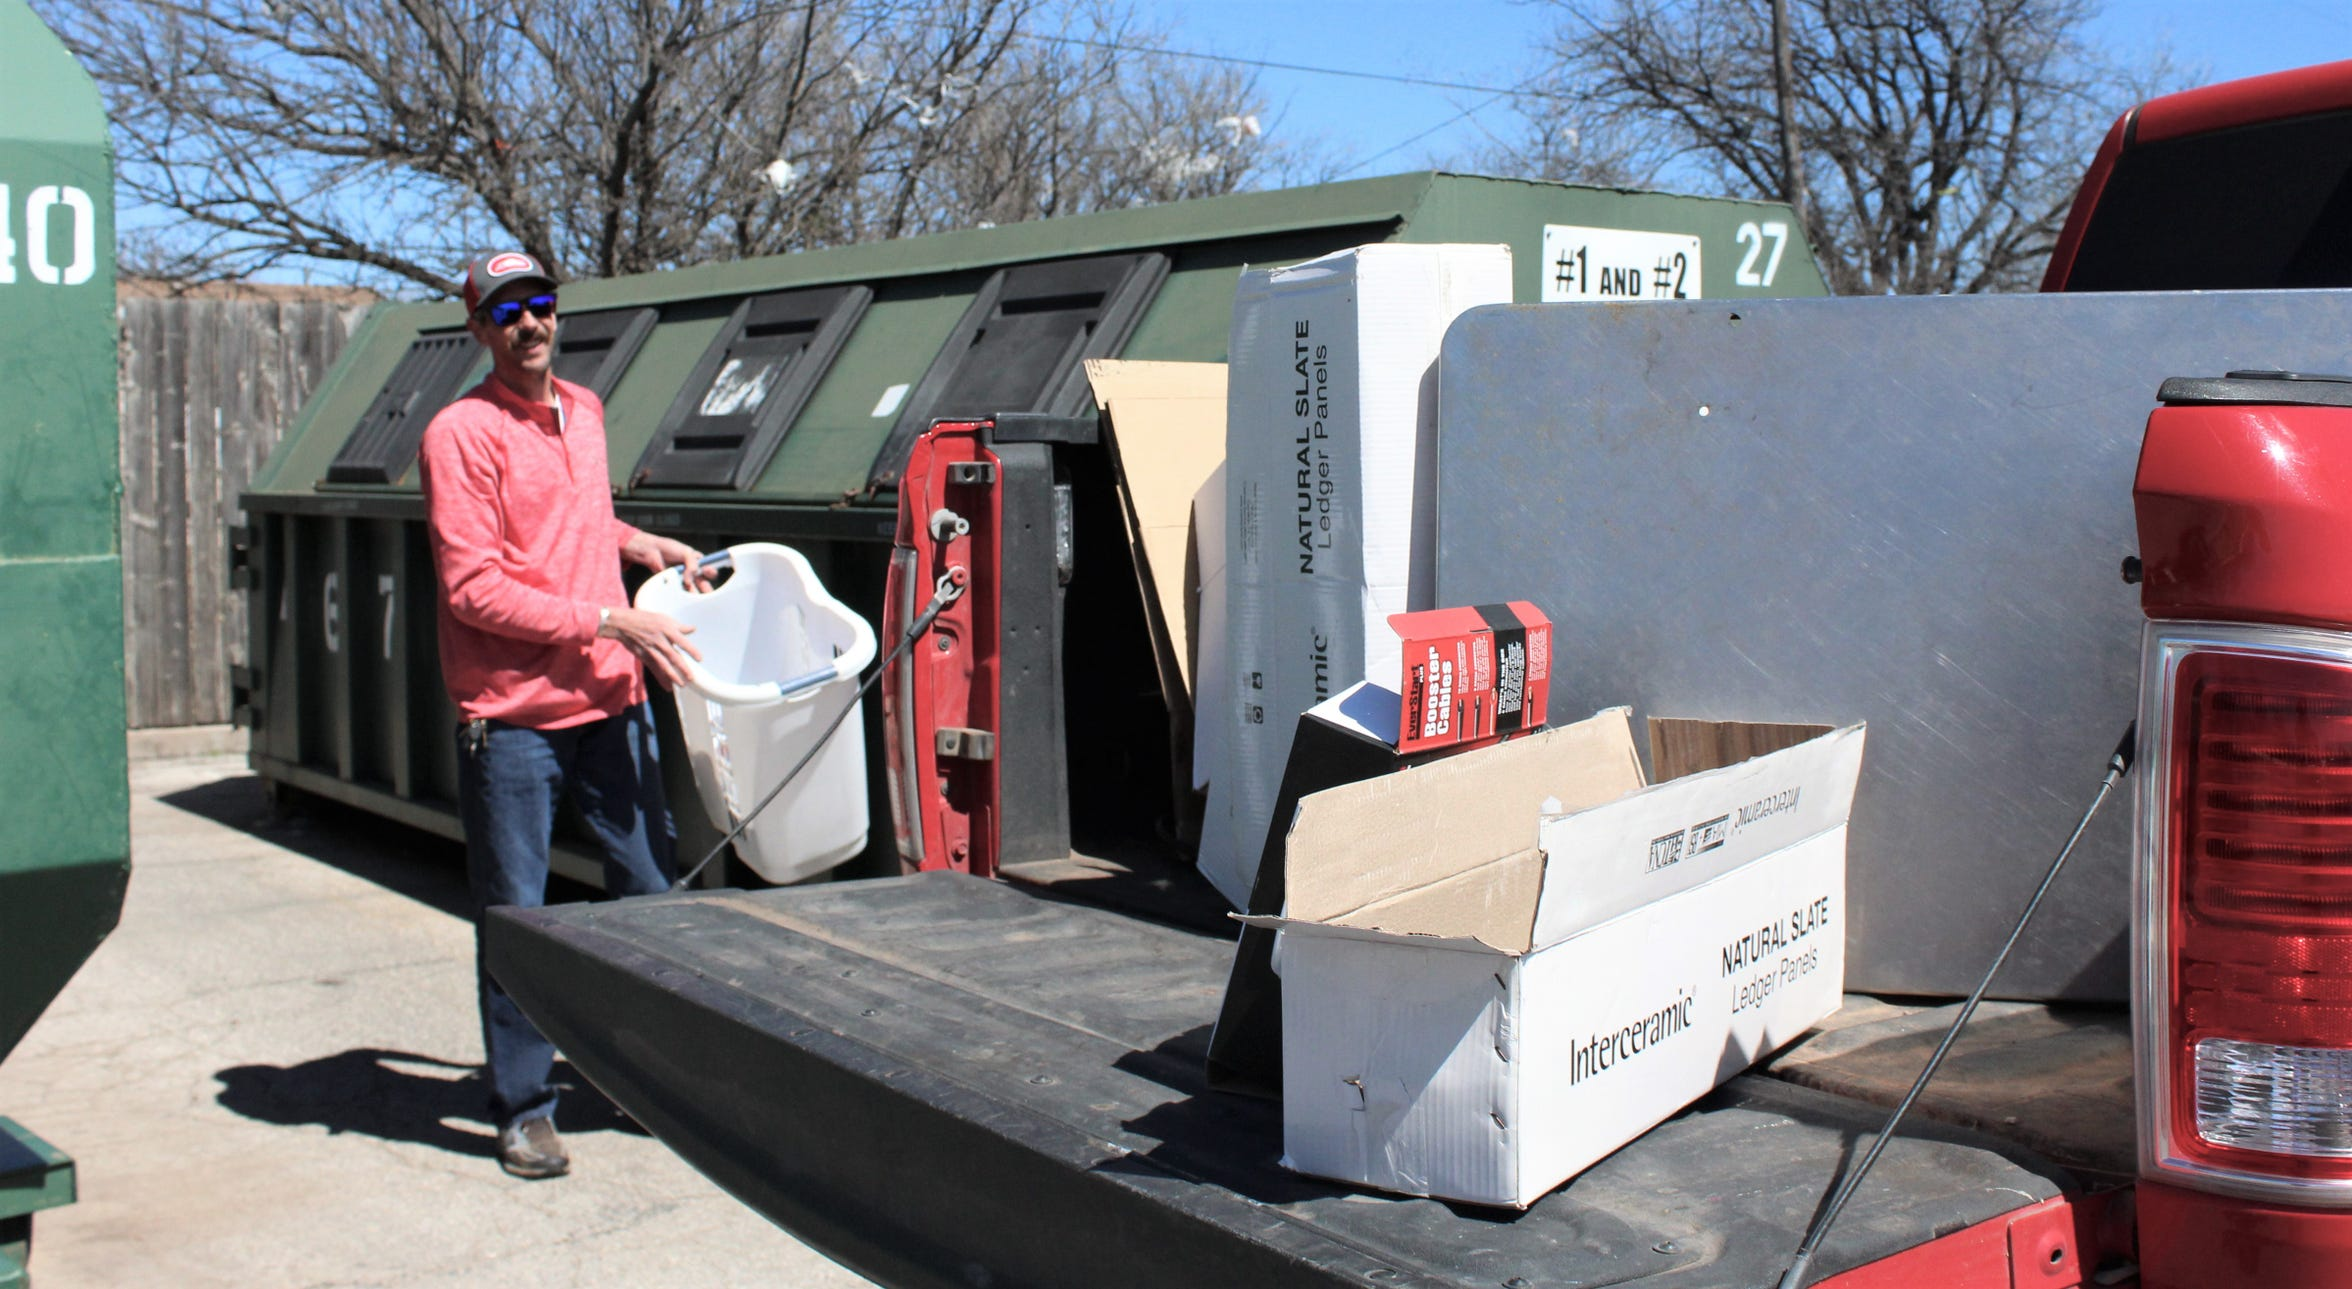 Abilene Chicken Express restaurant owner Evan Parker recycled cardboard and plastic items Friday at the city of Abilene's neighborhood location in the H-E-B parking lot off Barrow Street.